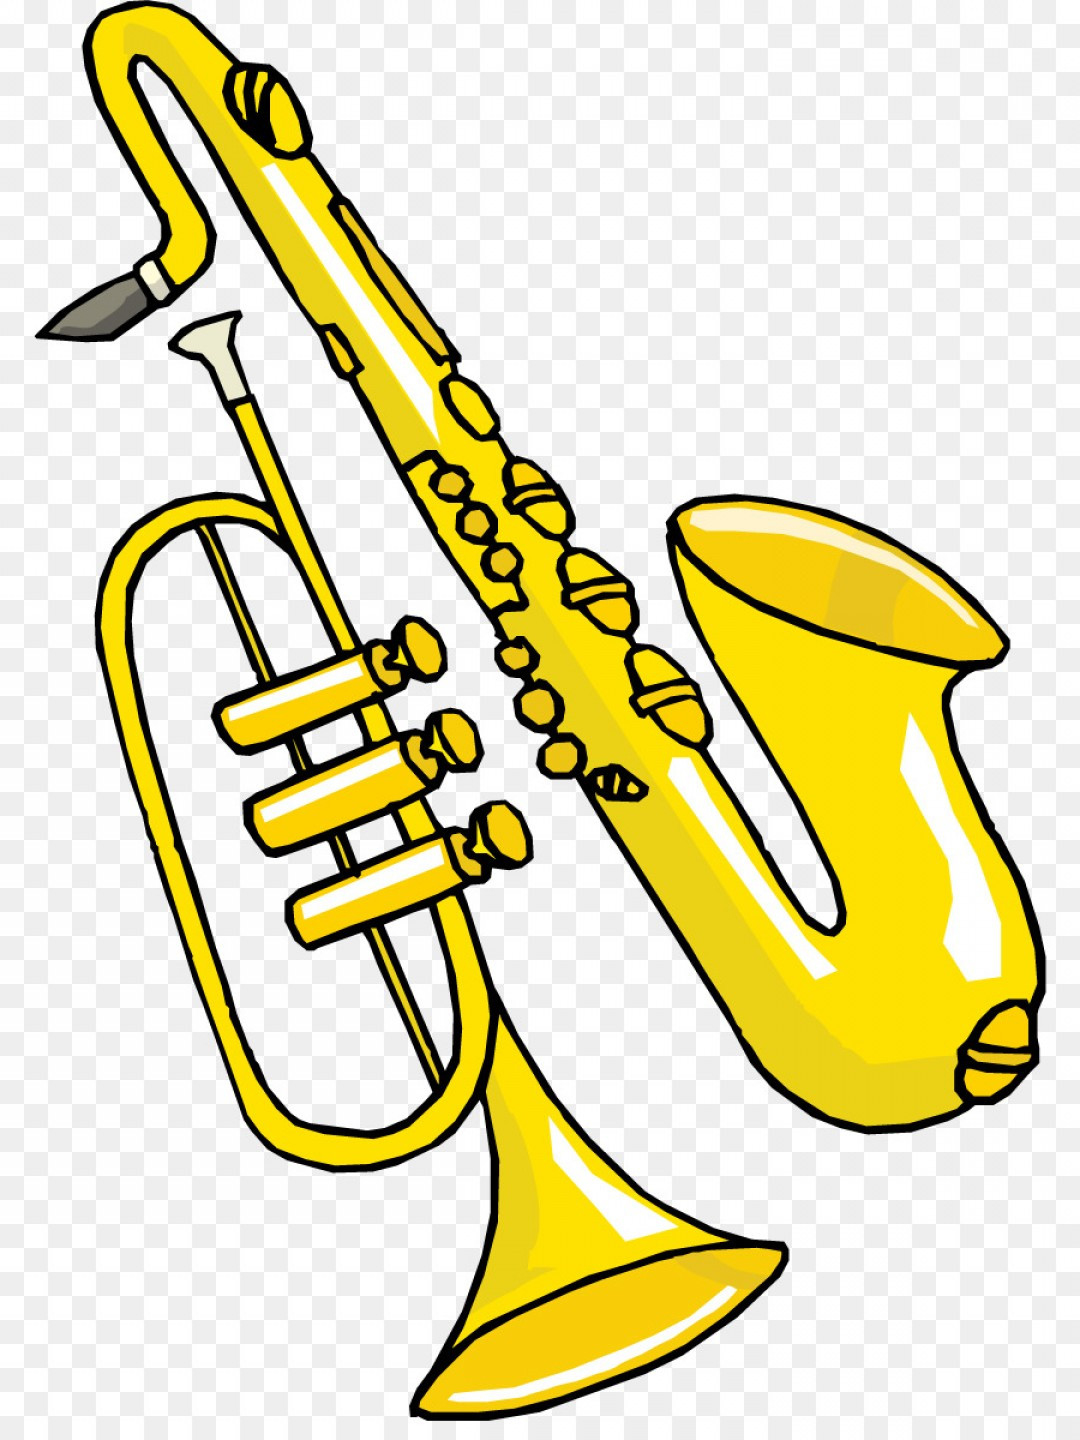 1080x1440 Png Saxophone Jazz Clip Art Cartoon Vector Shopatcloth Beauteous